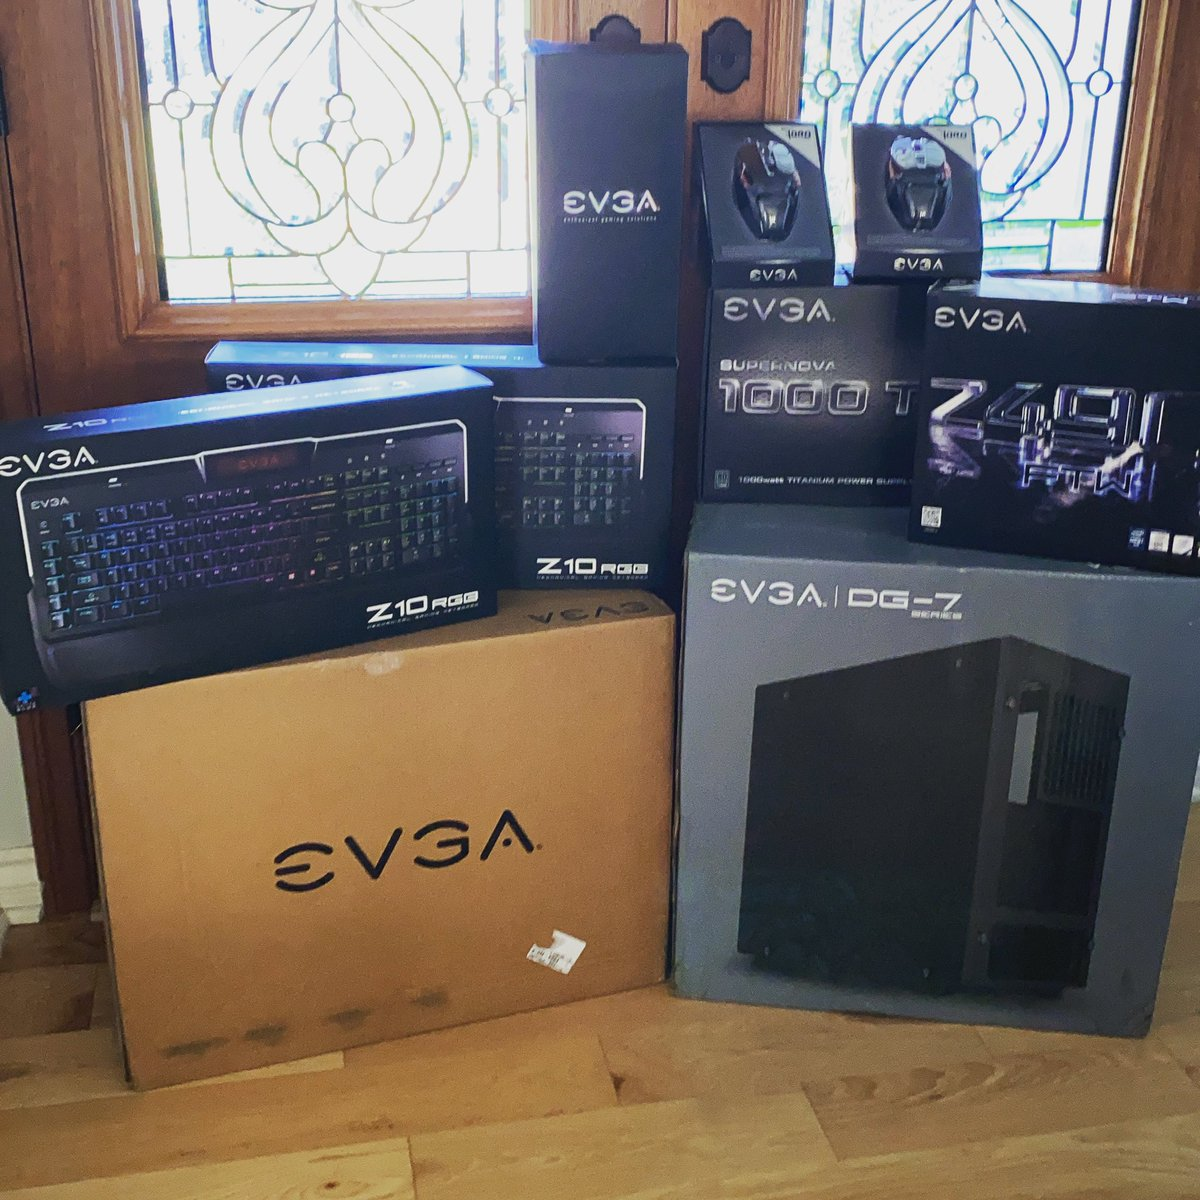 """Ding dong....I open the door....🤯🤯🤯! When my guy at @TEAMEVGA said he was sending something for me to """"check out"""" I didn't know he meant some THINGS!!! #christmascameearly https://t.co/4ULeEjfWrT"""